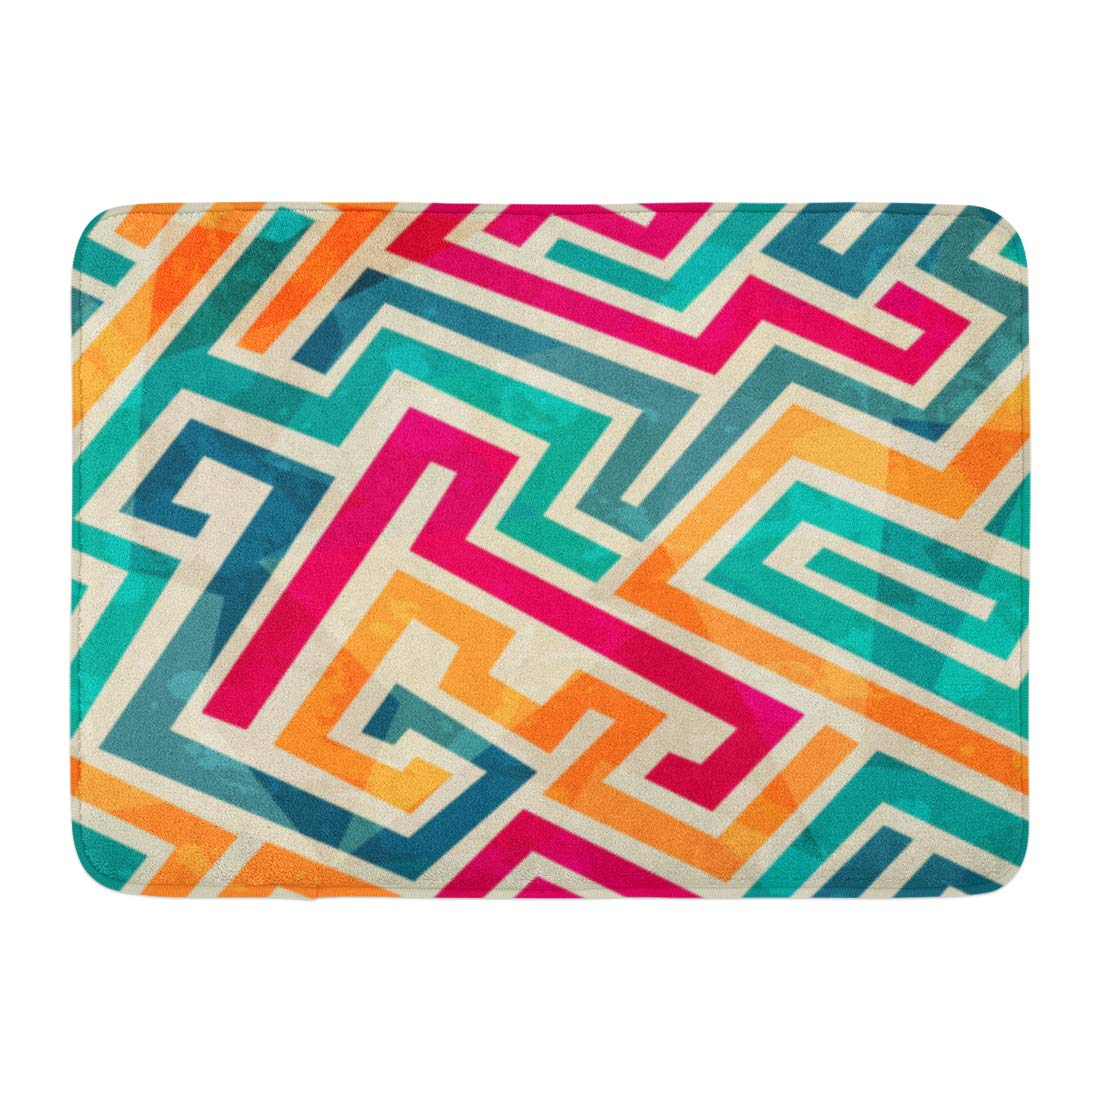 Vintage Effect Rug: GODPOK Colorful Fun Green Retro Colored Lines Grunge